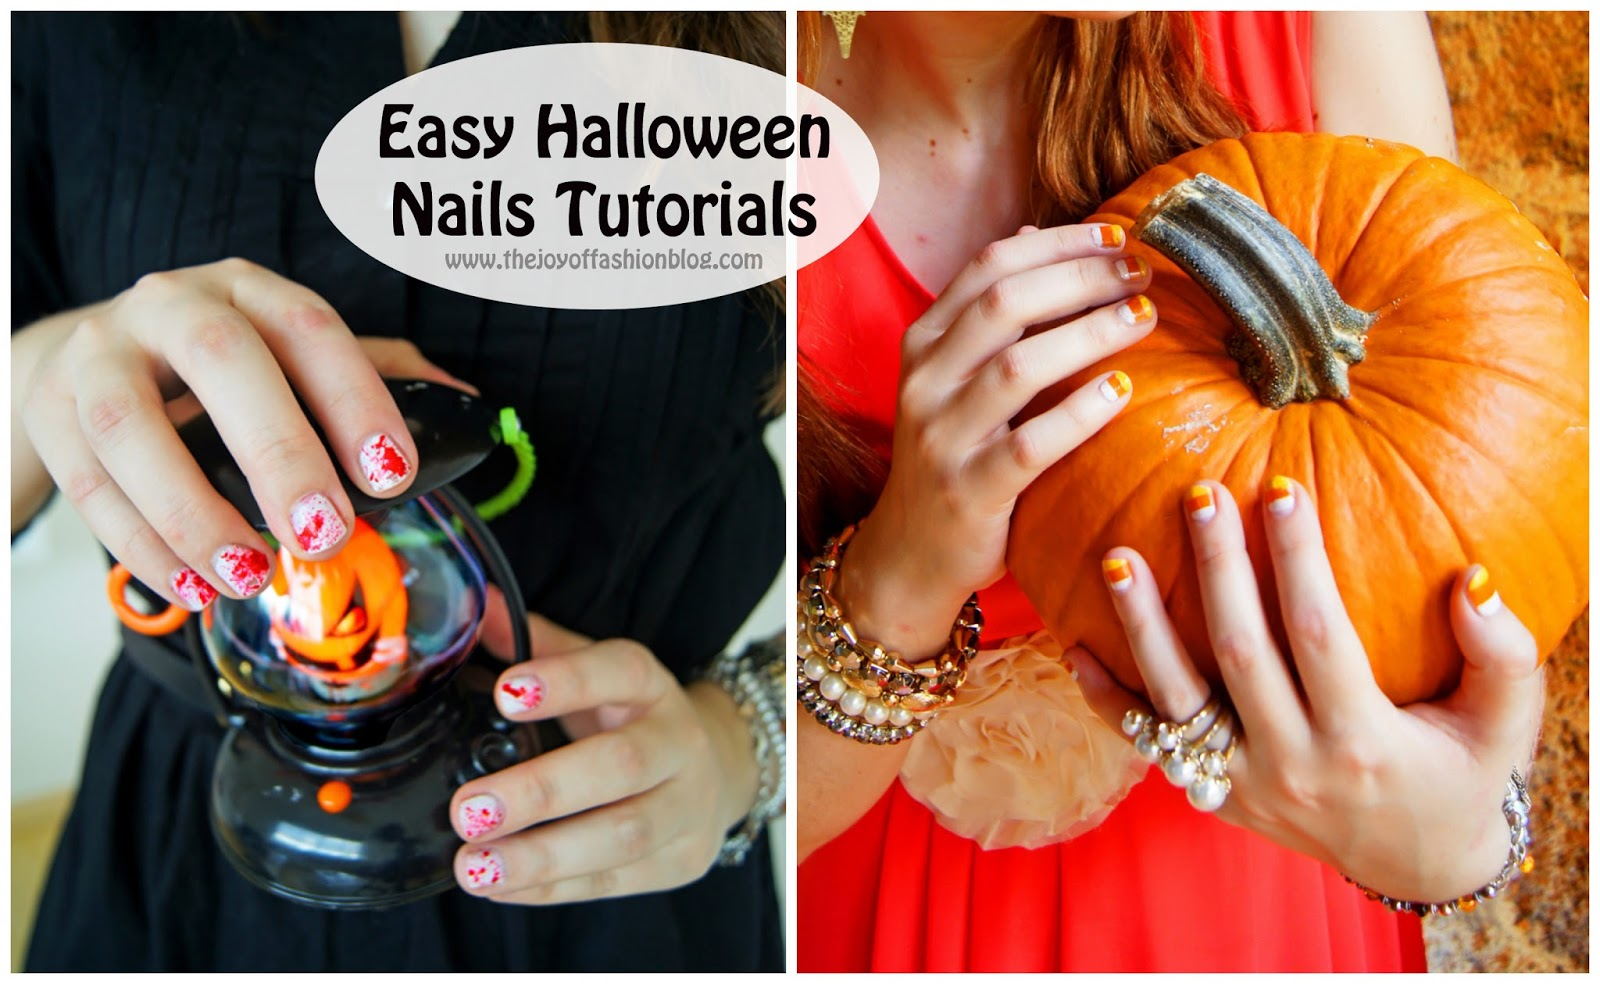 These two nail designs are perfect for Halloween and SO easy to do! Click through for full tutorial